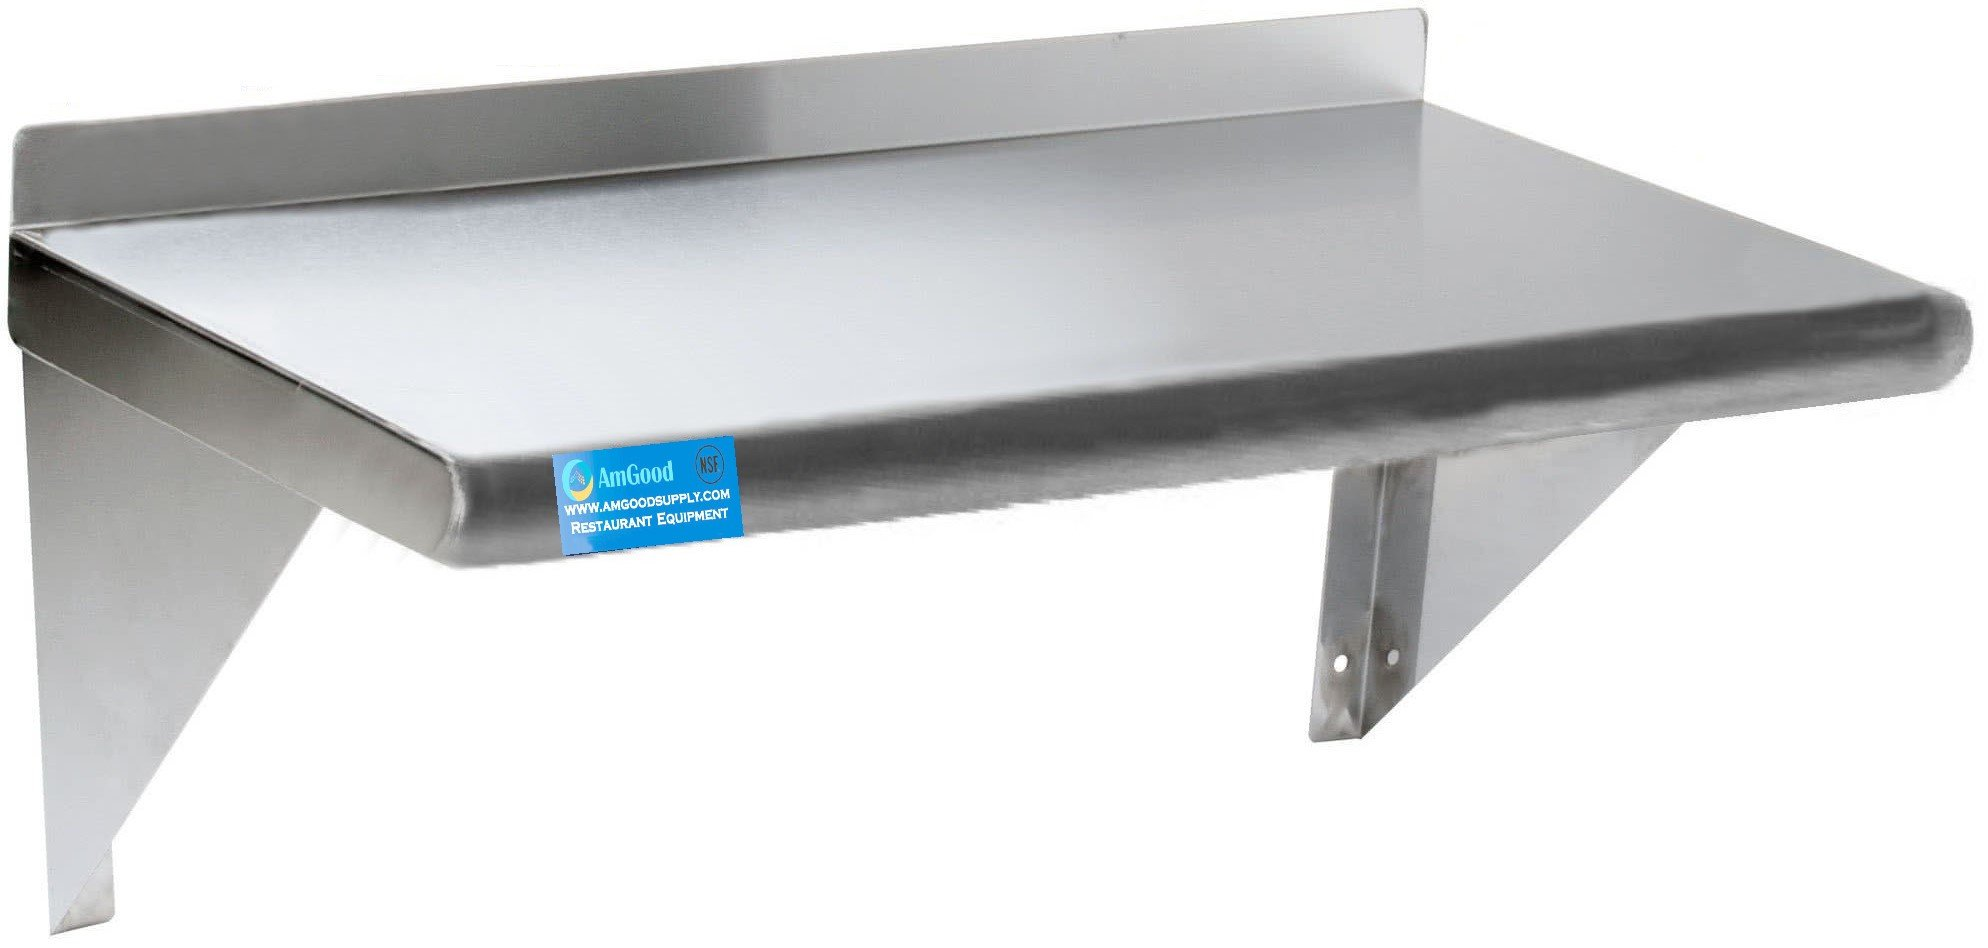 18'' X 30'' Stainless Steel Wall Shelf | NSF Kitchen | Appliance & Equipment | Laundry & Garage Shelving | Utility Room by AmGood